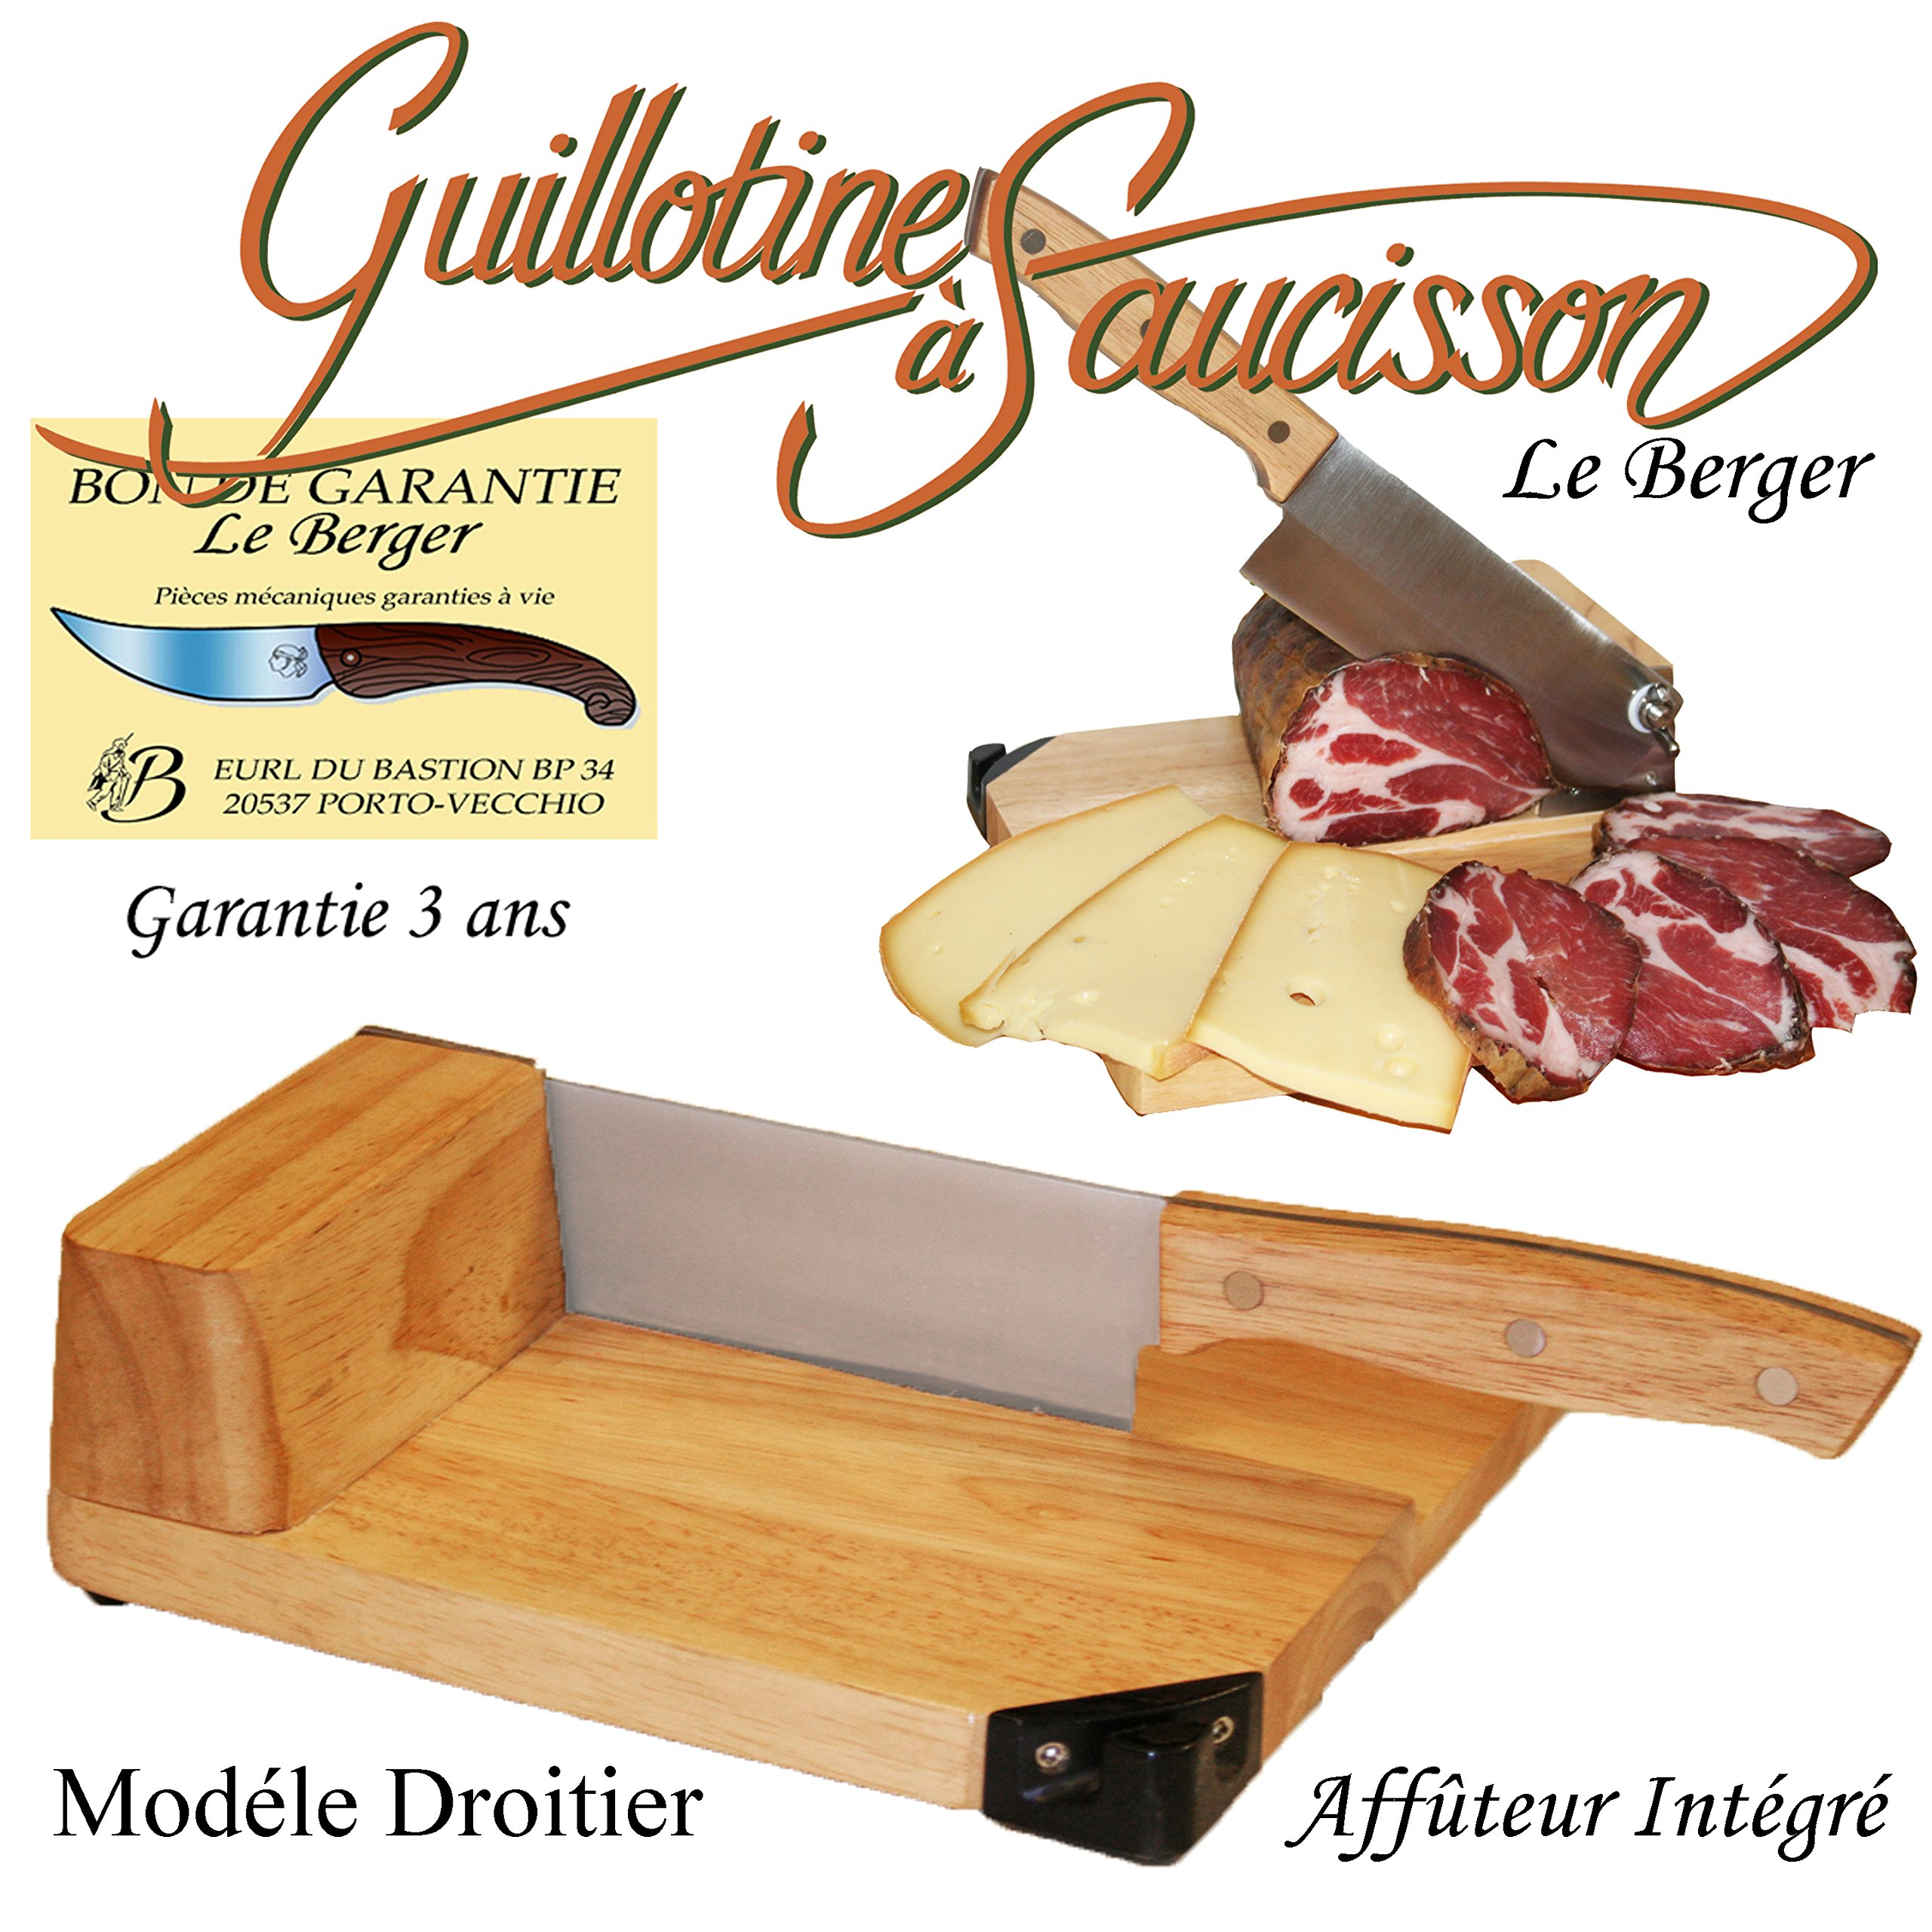 Traditional sausage guillotine slicer Toque Chef 100% french handmade by Le Berger